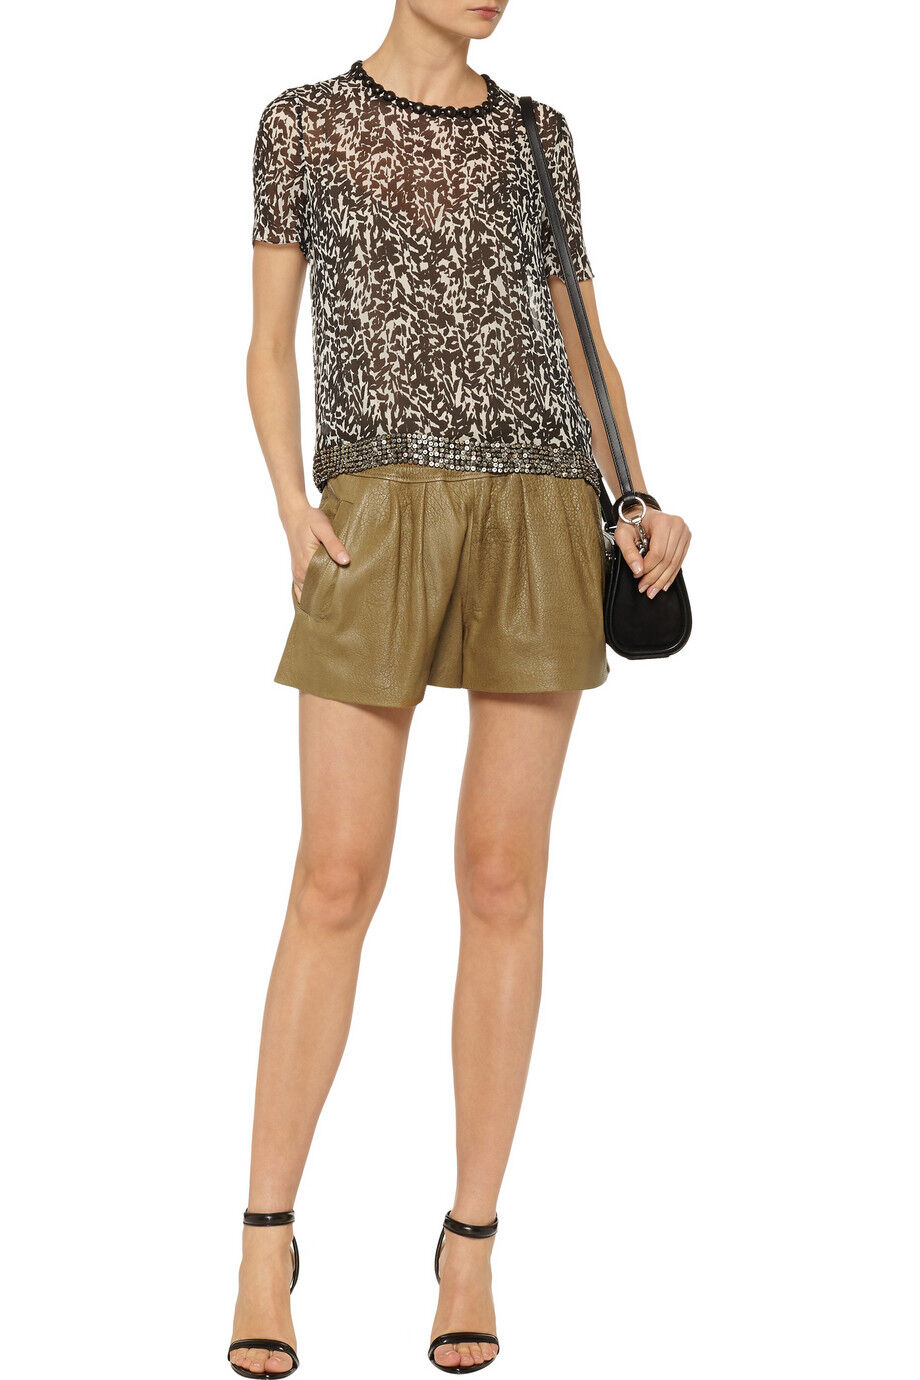 ISABEL MARANT SAND ABON TEXTURED LEATHER SHORTS FR 38